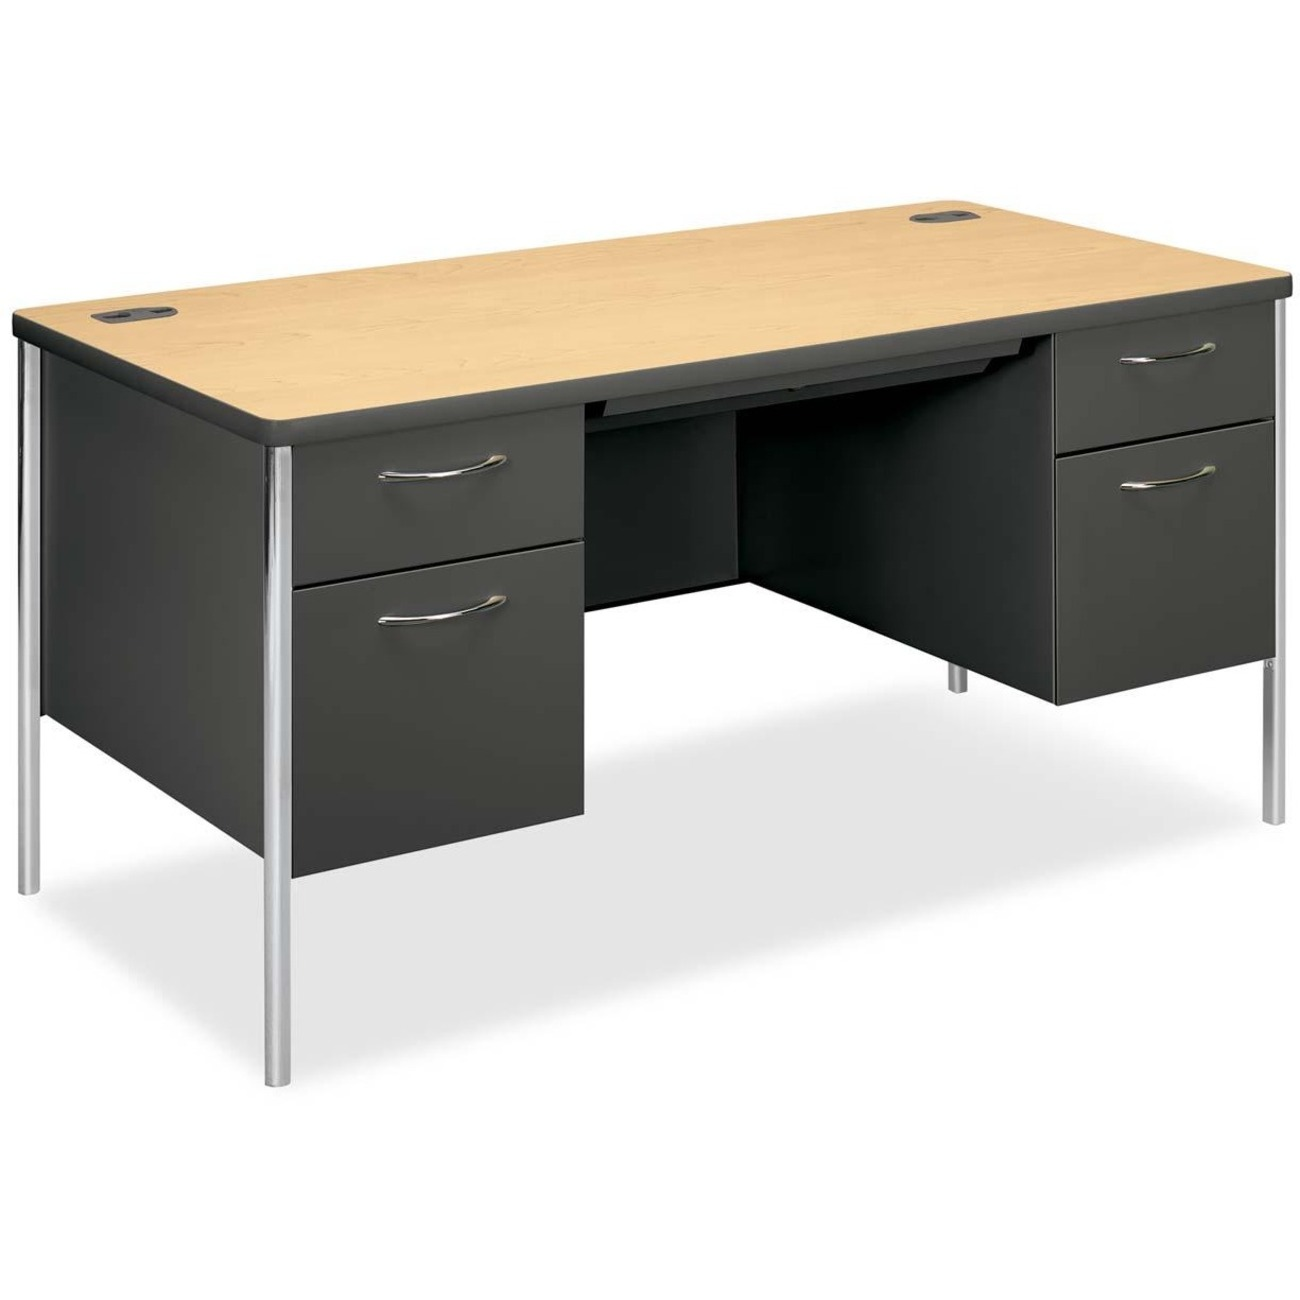 Hon Mentor 88962 Pedestal Desk 60 X 30 29 5 Double Rounded Edge Material Steel Finish Charcoal Natural Maple